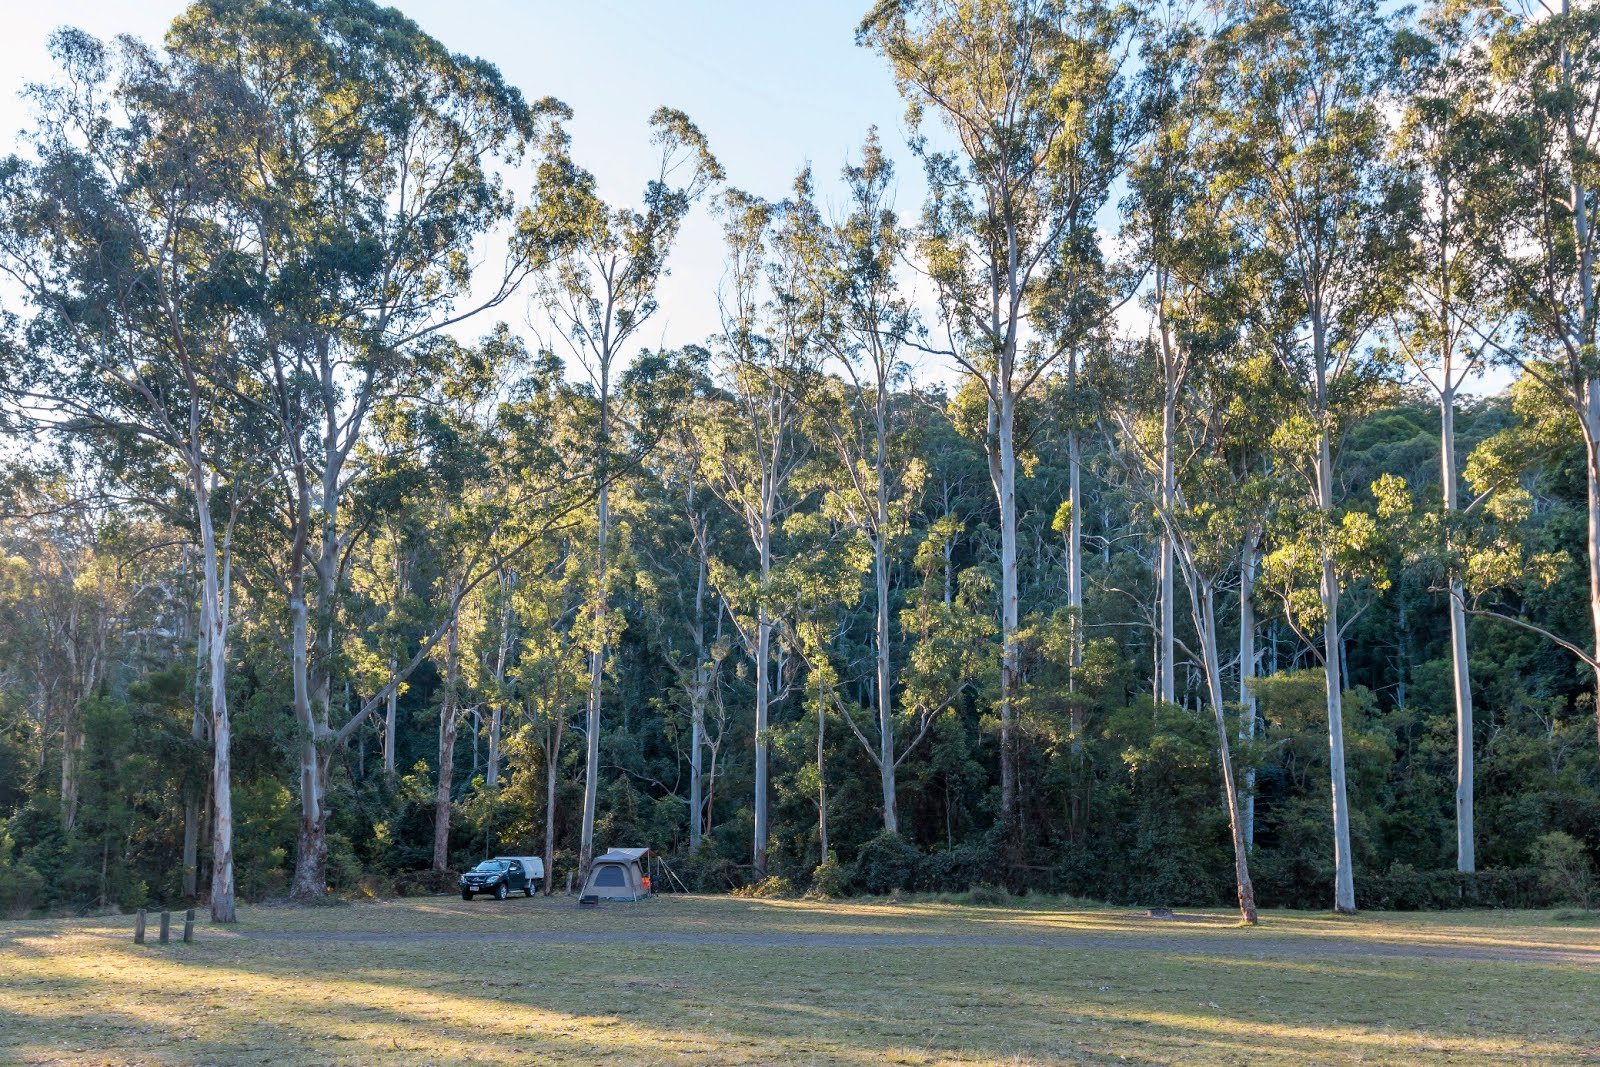 National Park Odyssey: Manna Gum Camping Area, Goomburra Section of Main Range National Park, QLD.